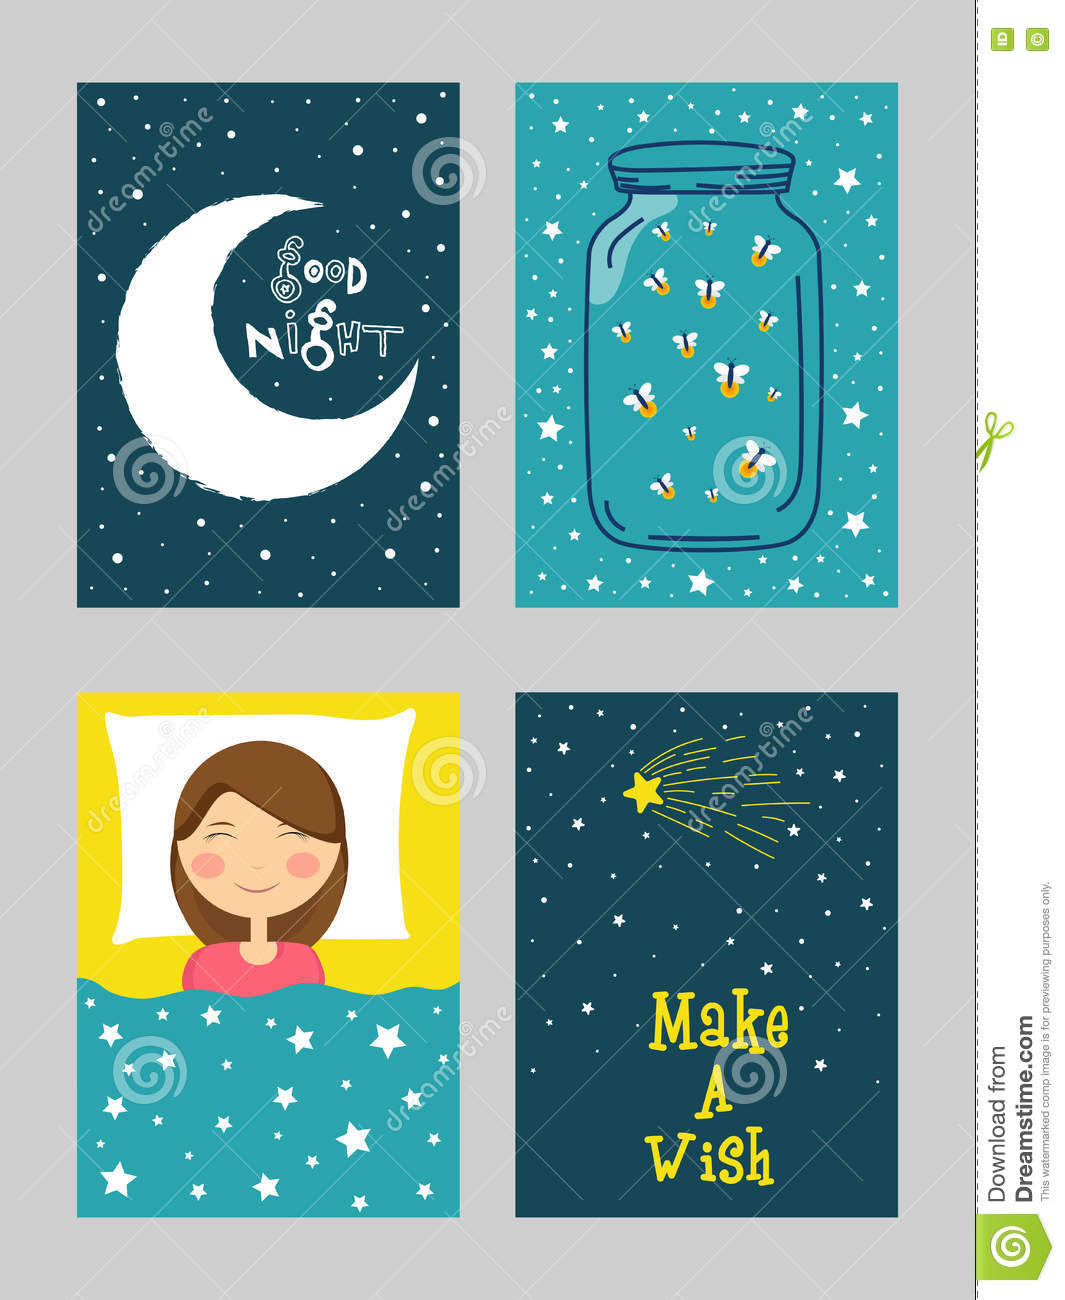 Good night greeting card set in doodle style stock illustration good night greeting card set in doodle style m4hsunfo